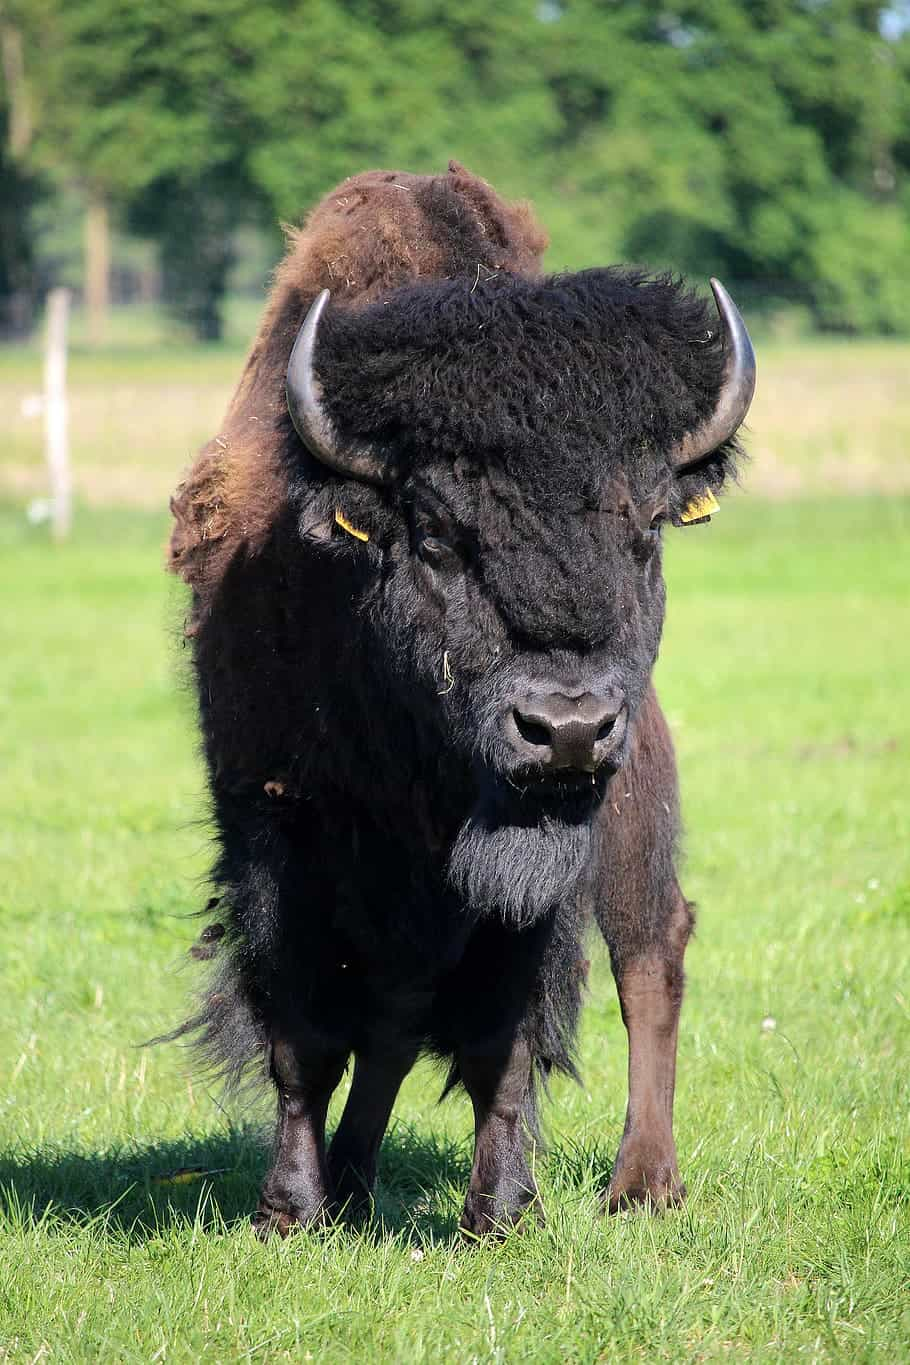 Where is Bison found?